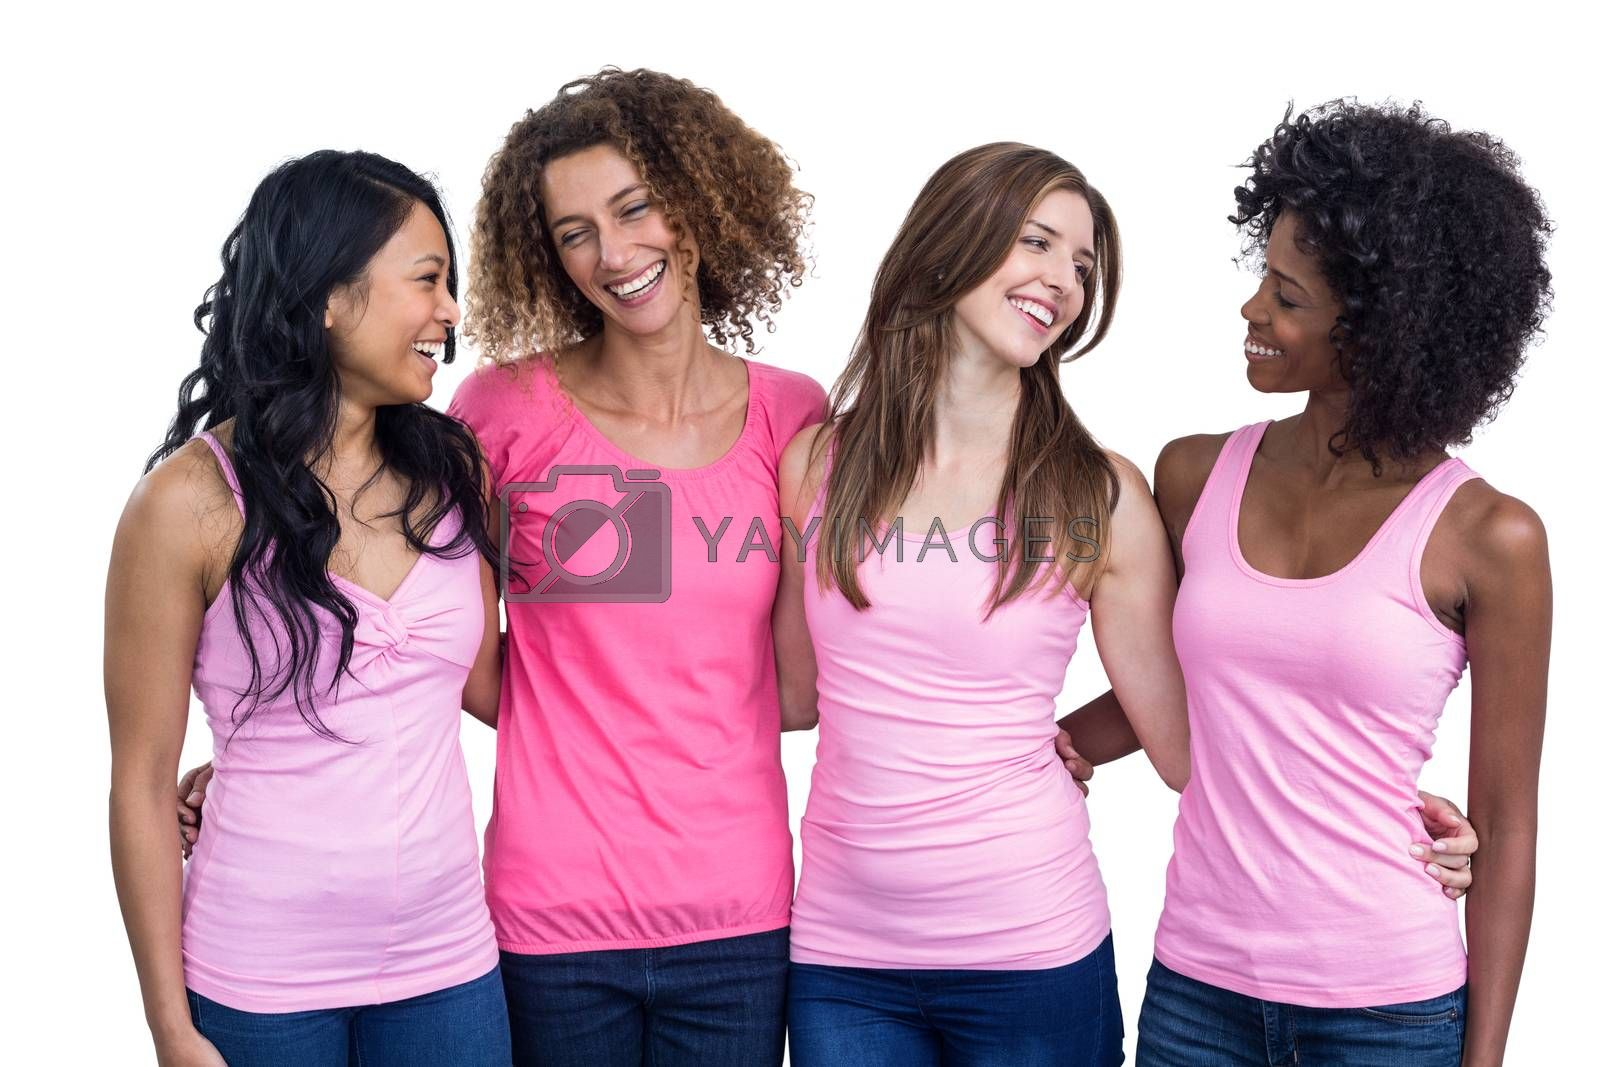 Smiling women in pink outfits standing together on white background